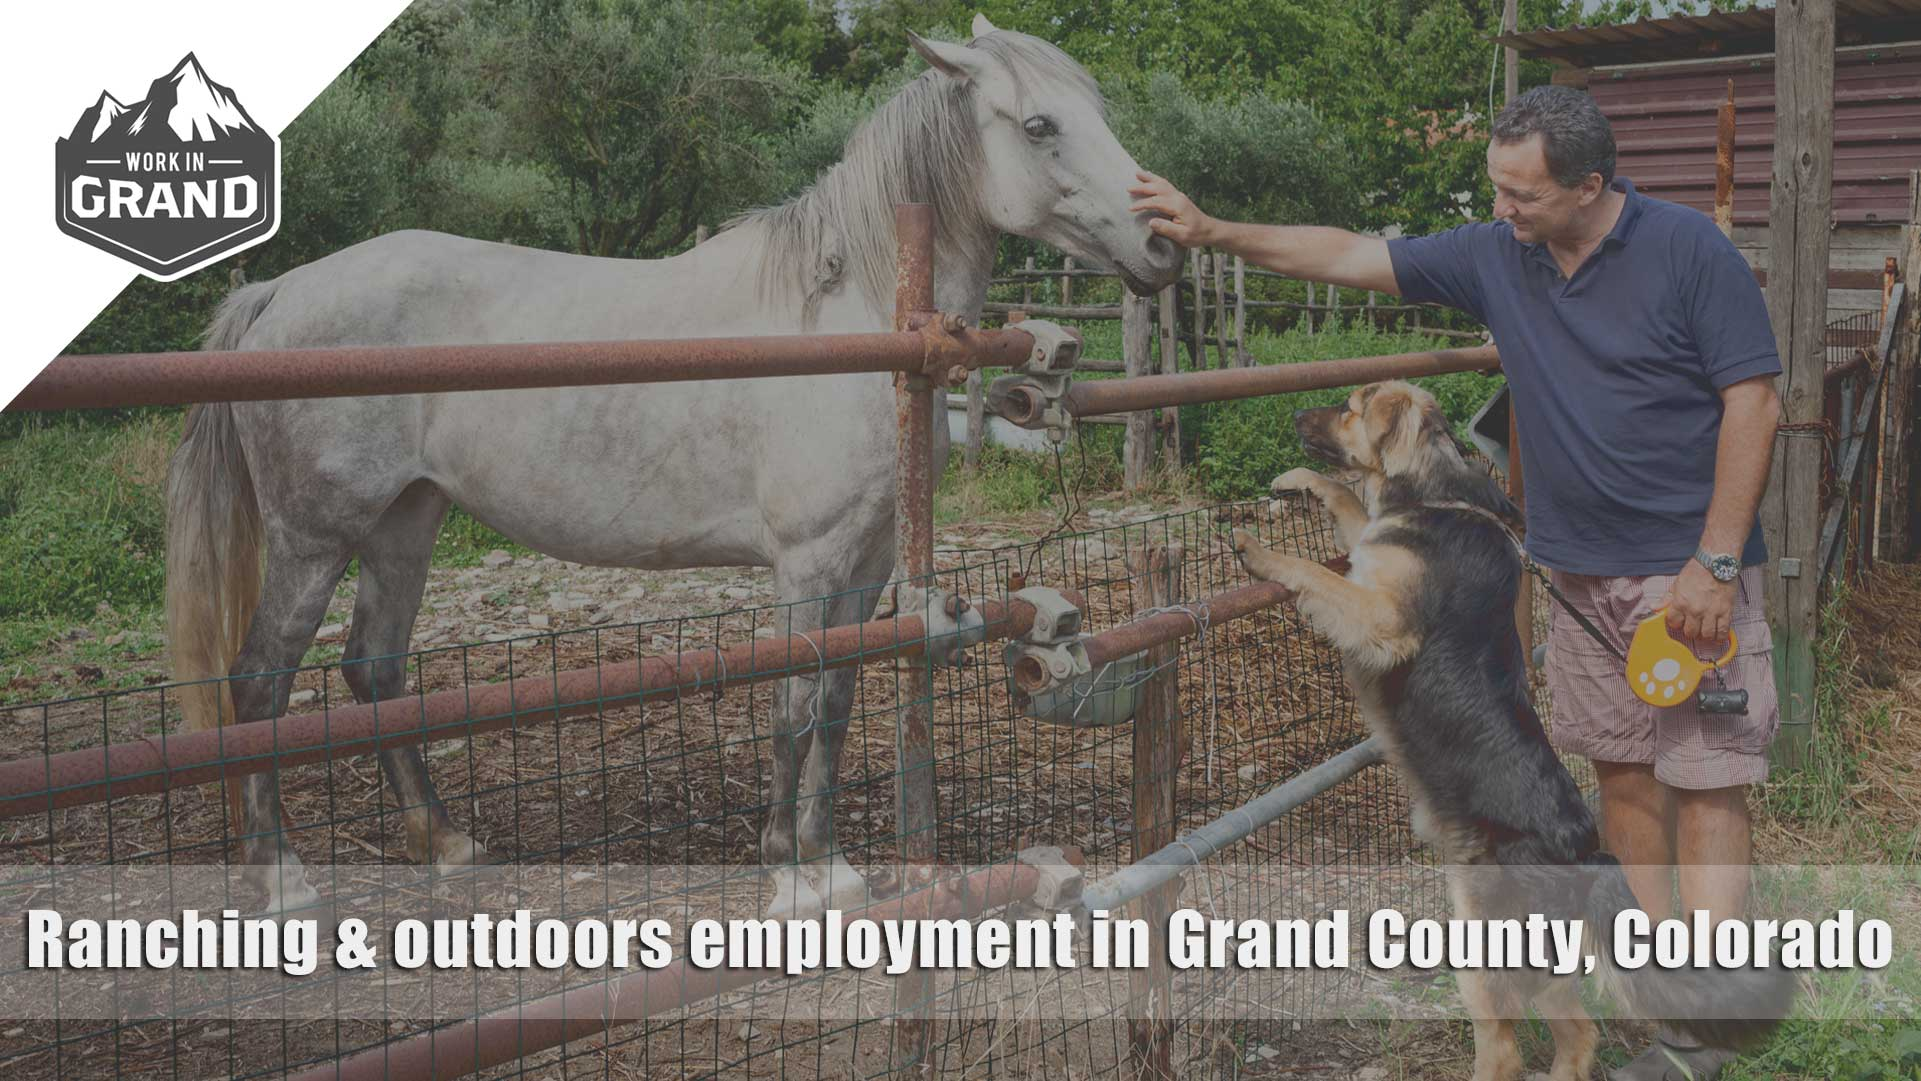 Ranching & outdoors employment in Grand County, Colorado